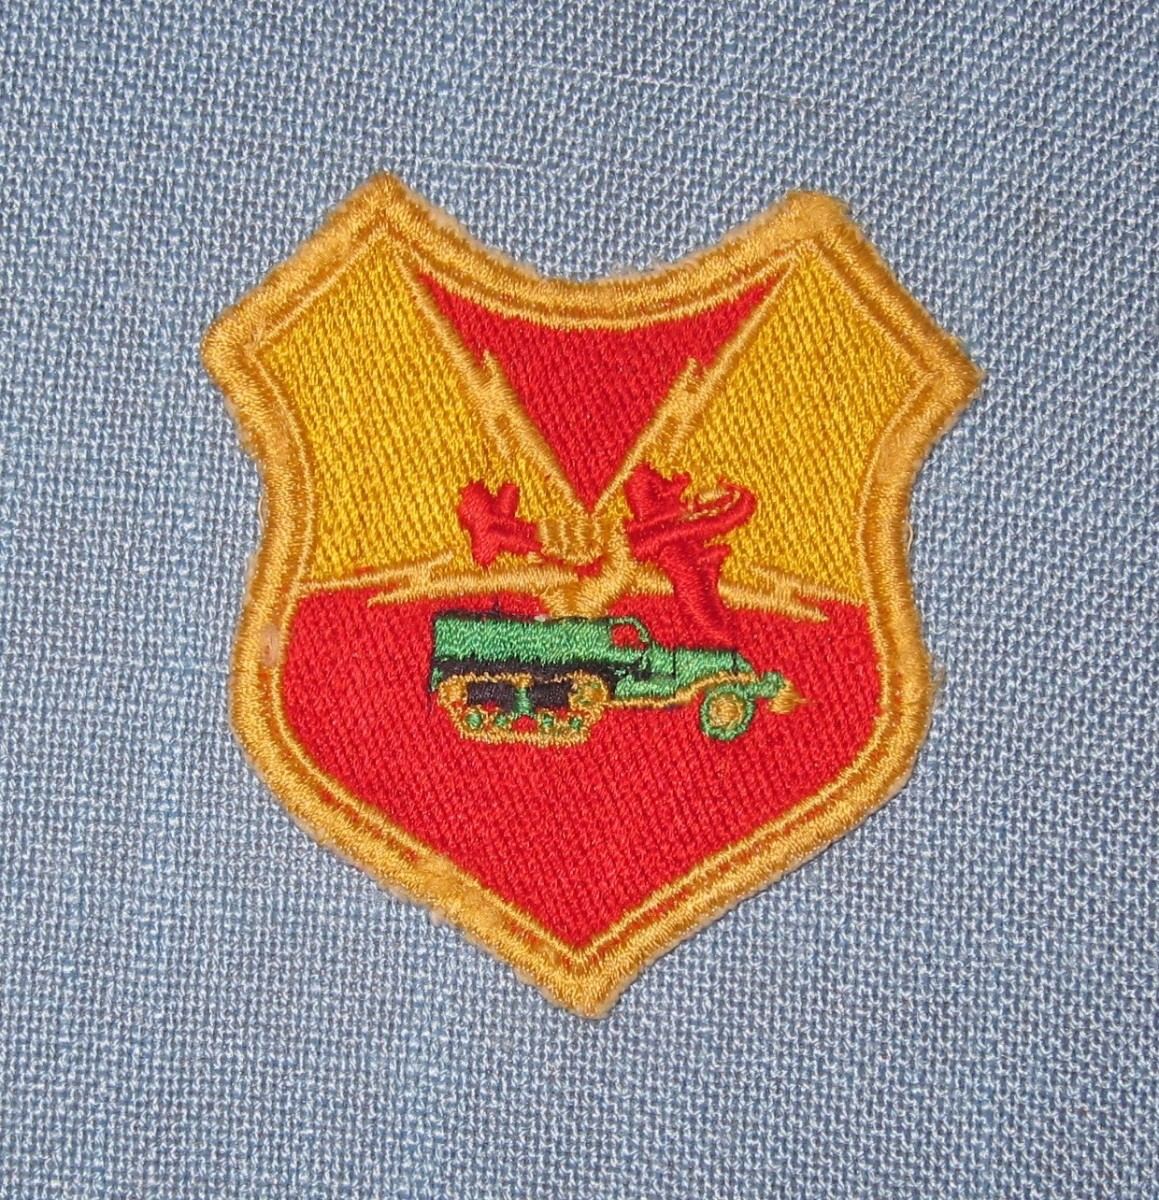 3rd Armored Division Patch Wwii